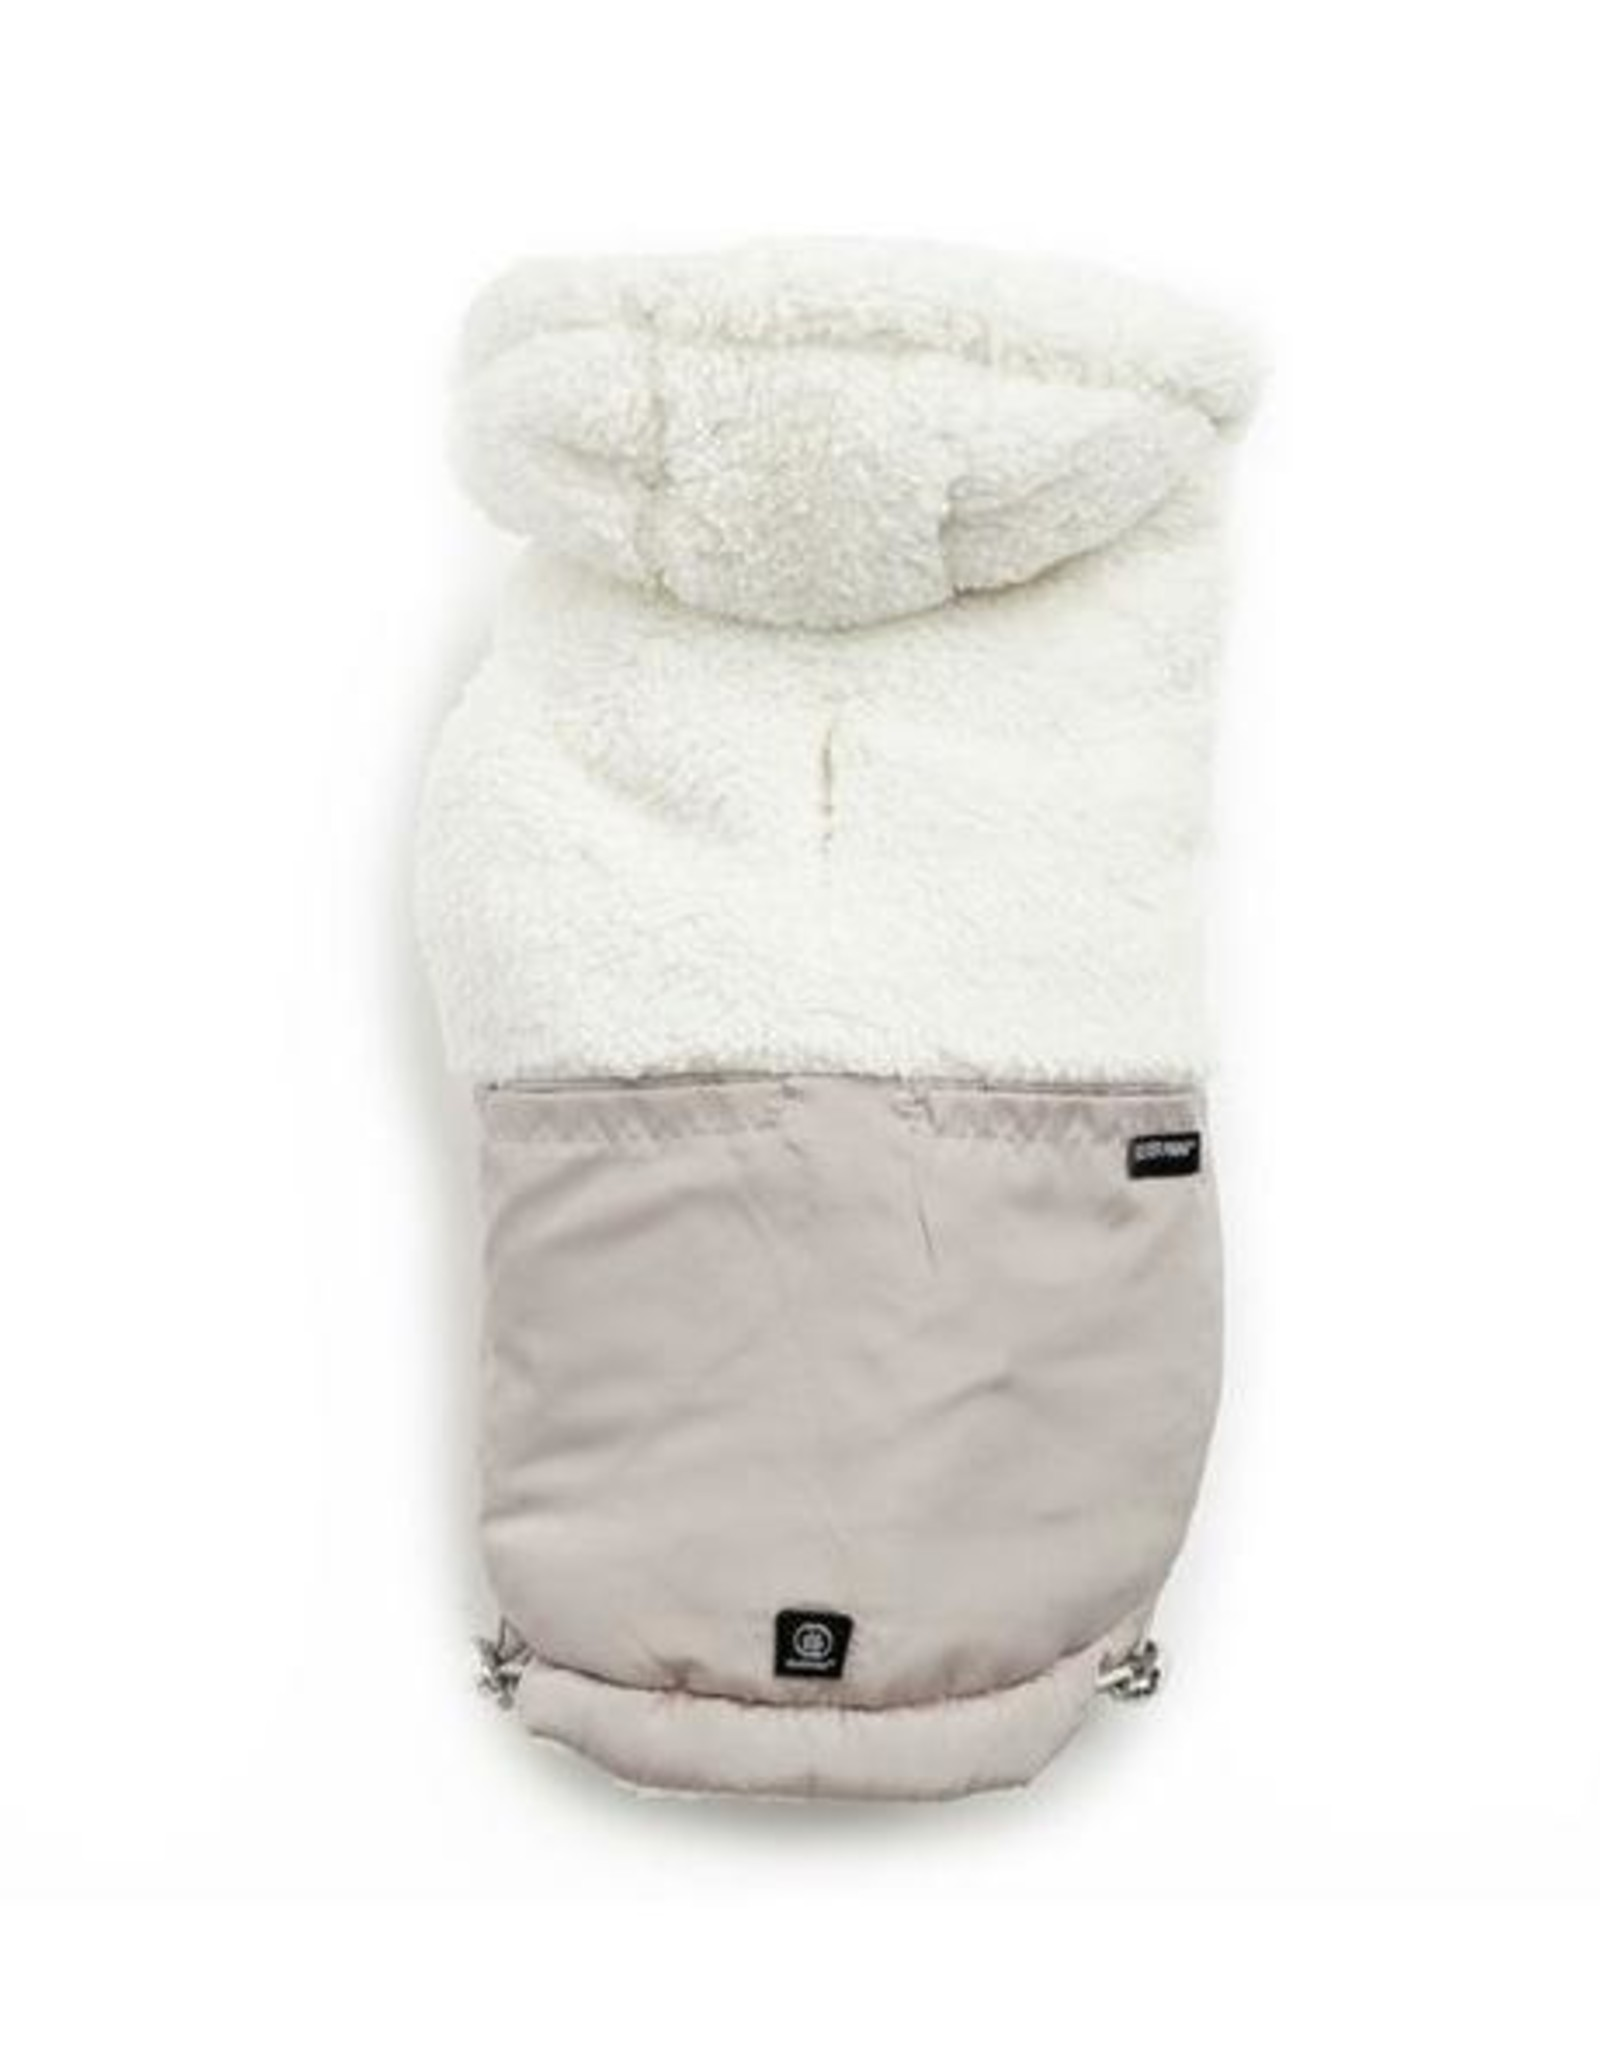 Silver Paw Silver Paw - Quilted Jacket Hoodie Tan S